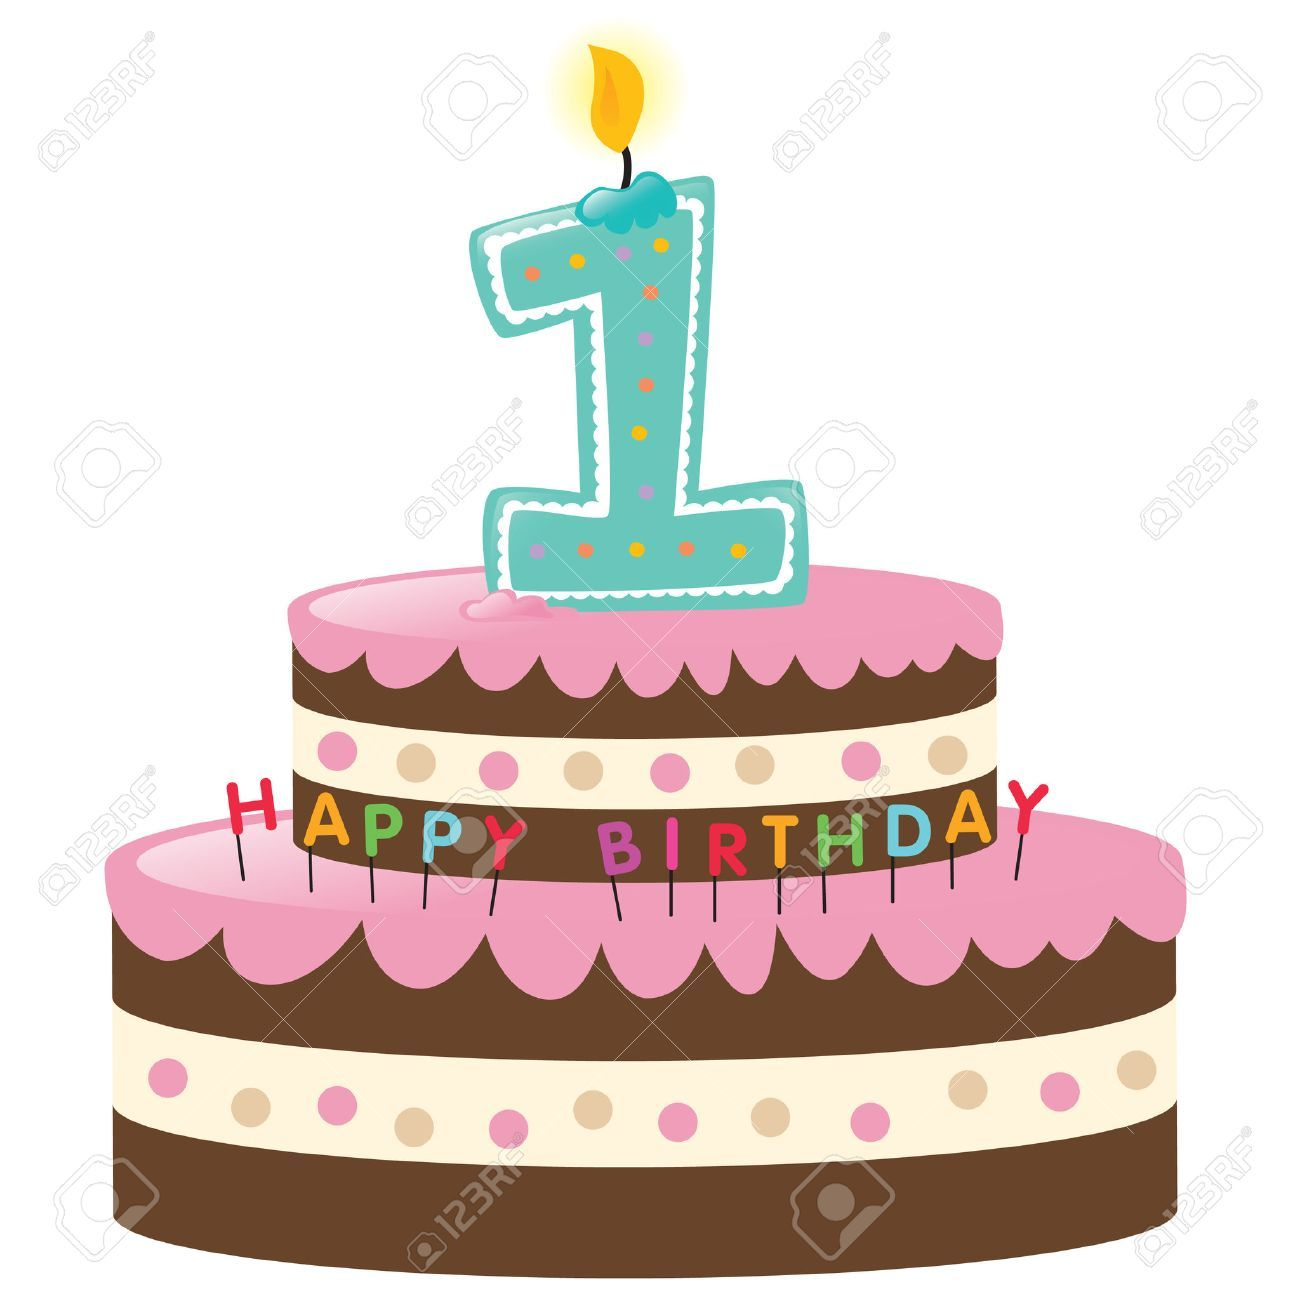 Birthday cake 1 clipart banner library library 1st birthday cake clipart 1 » Clipart Portal banner library library